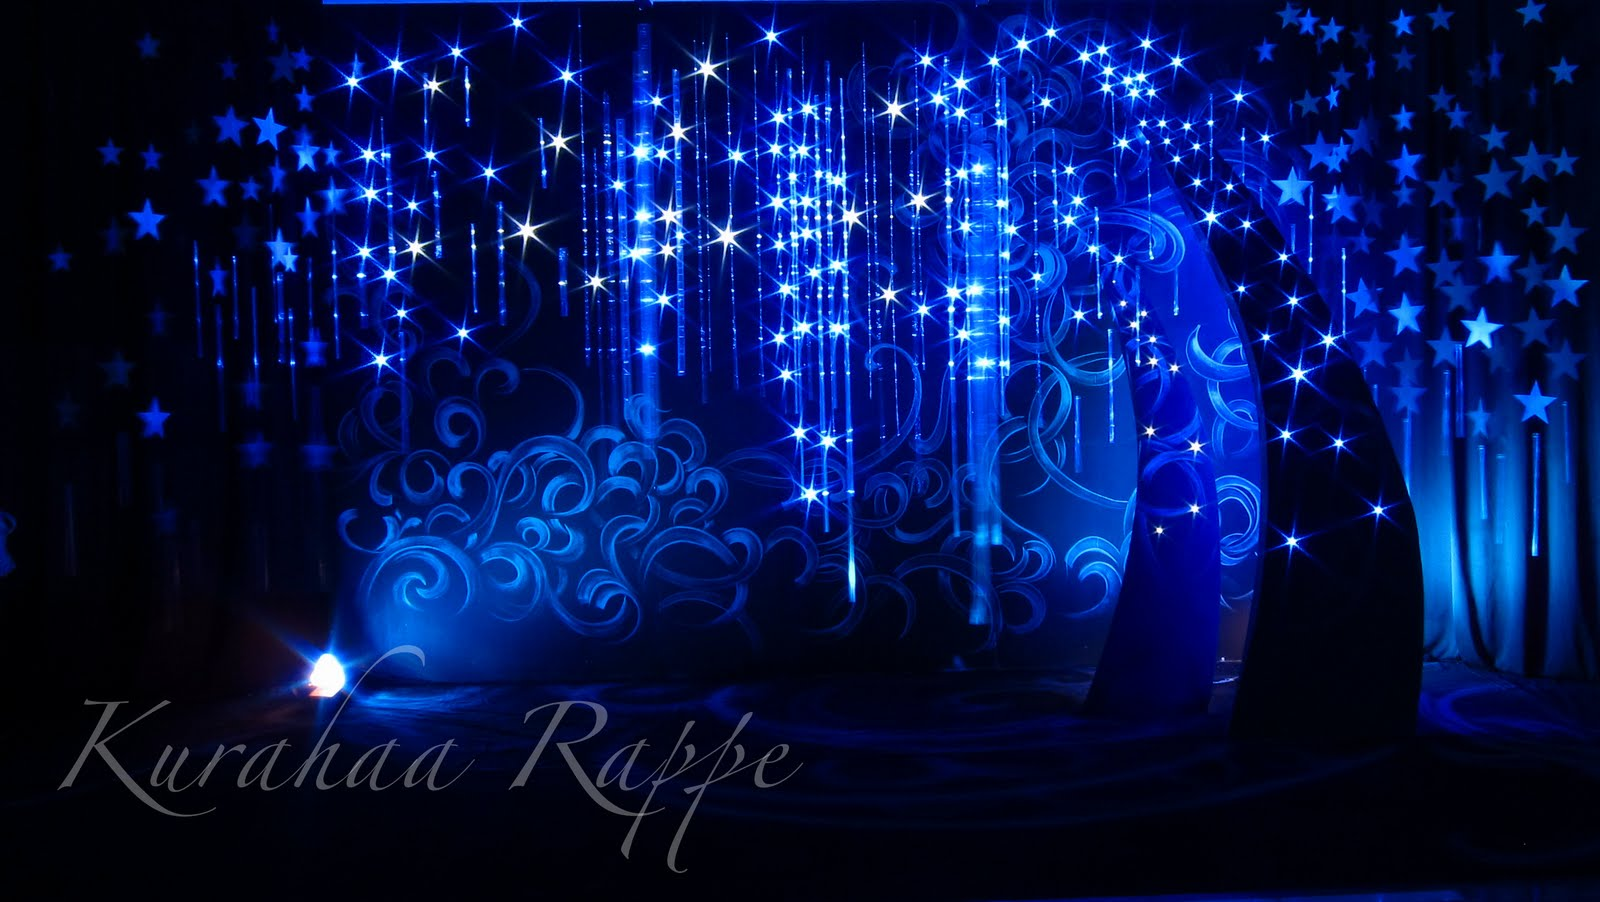 kurahaa rappe stars wedding set and decoration